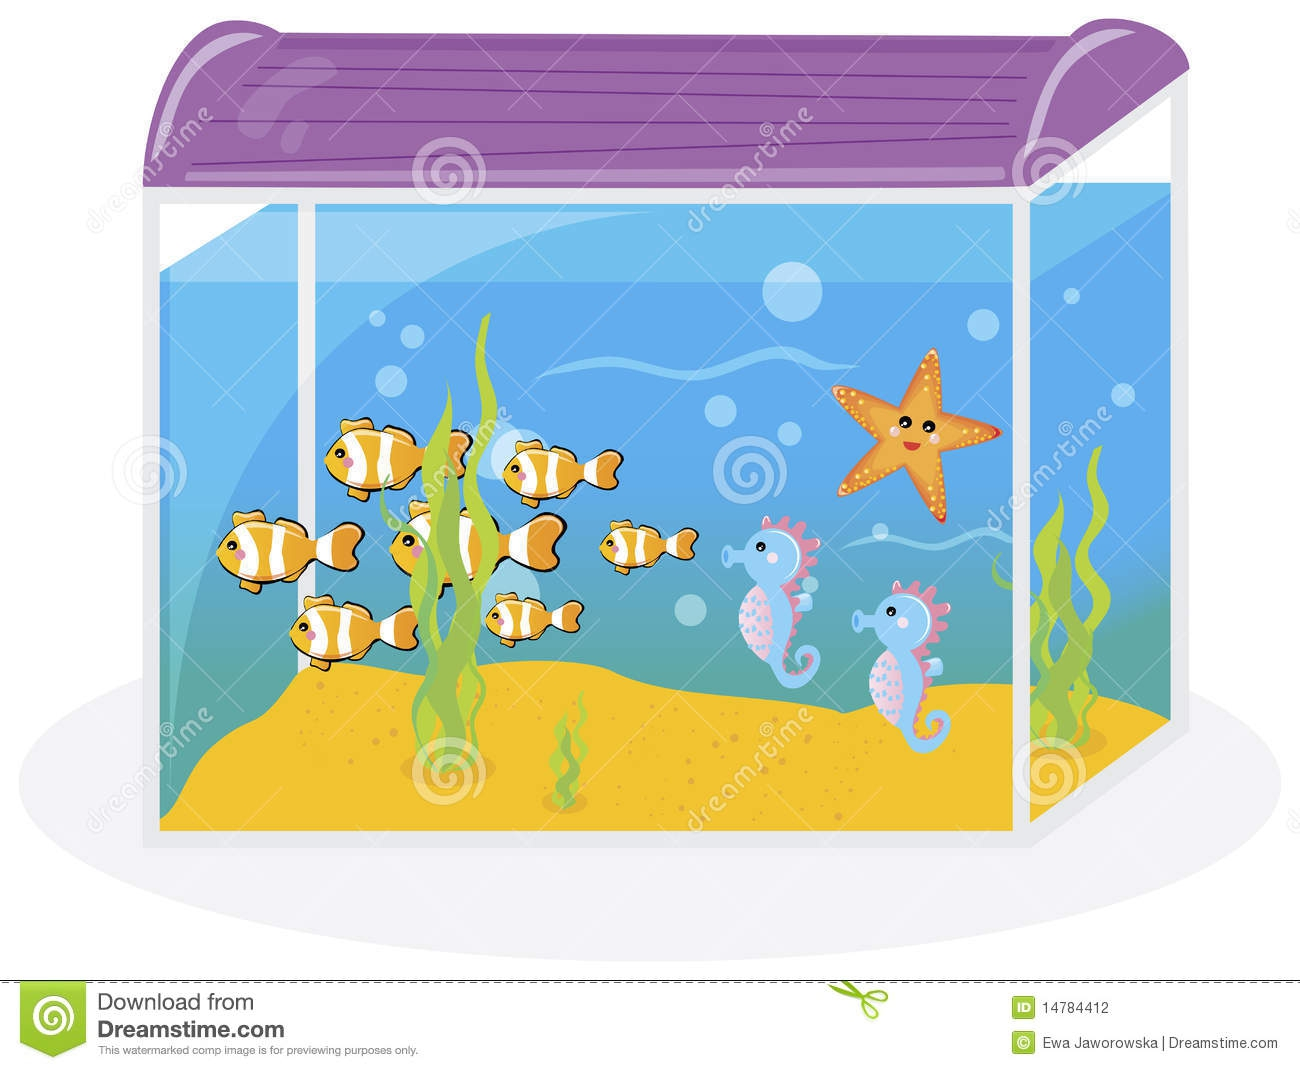 Embed codes for your. Aquarium clipart cute